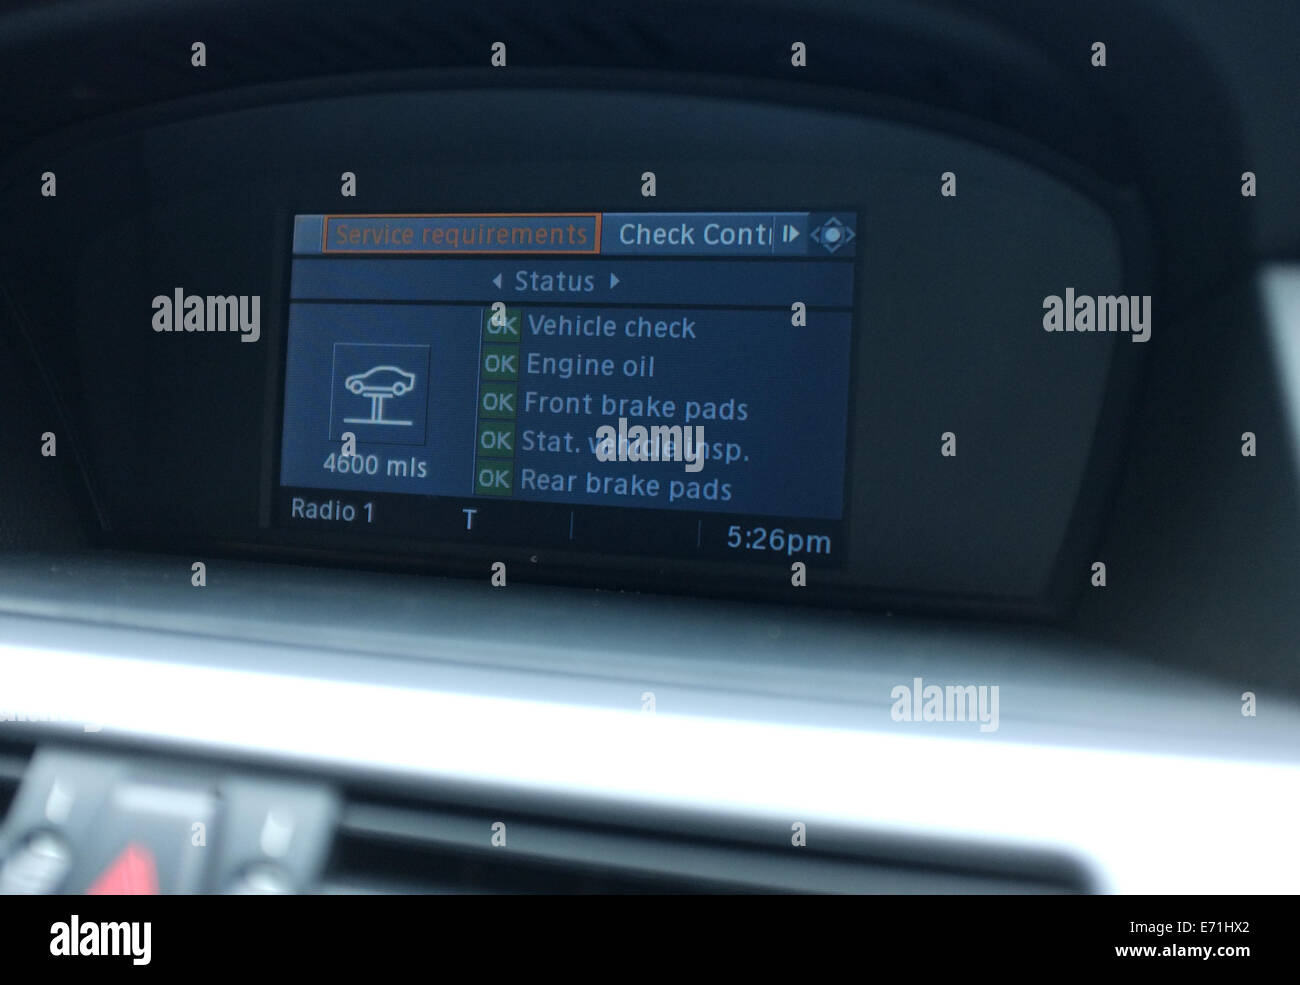 2008 BMW car iDrive information screen showing vehicle service Stock